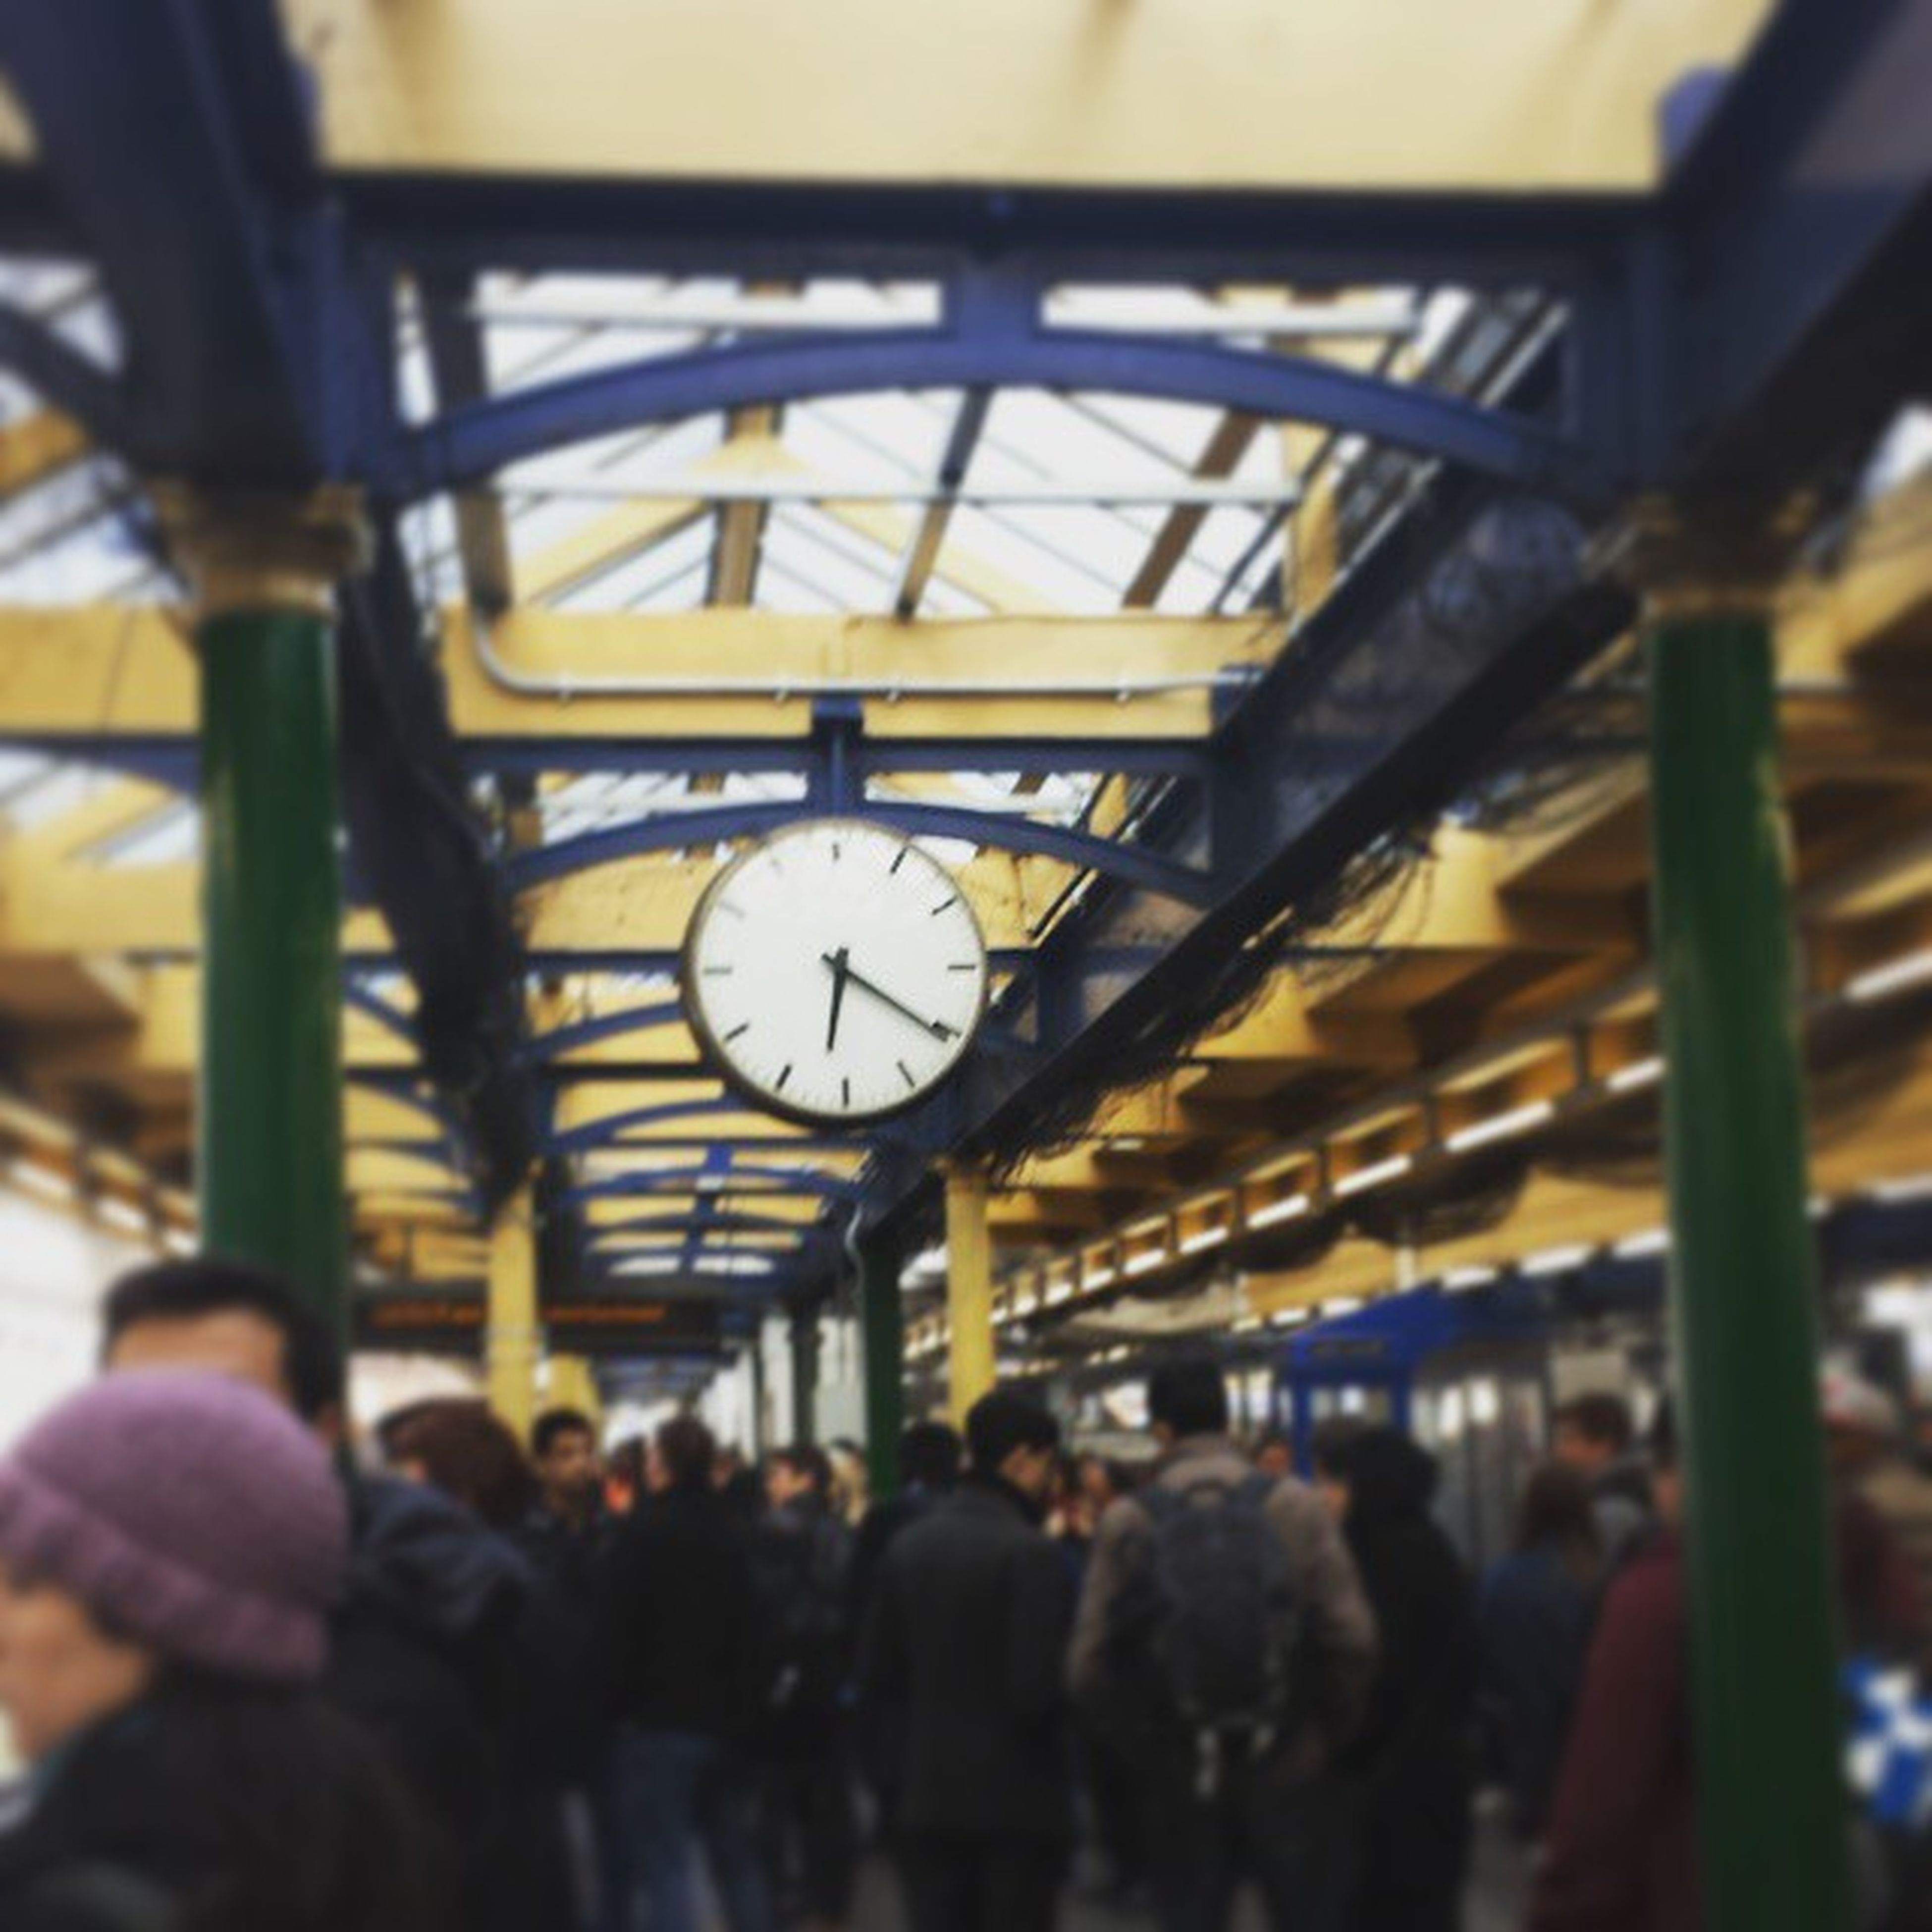 indoors, large group of people, men, person, lifestyles, architecture, built structure, leisure activity, transportation, railroad station, travel, public transportation, city life, ceiling, incidental people, illuminated, walking, shopping mall, rail transportation